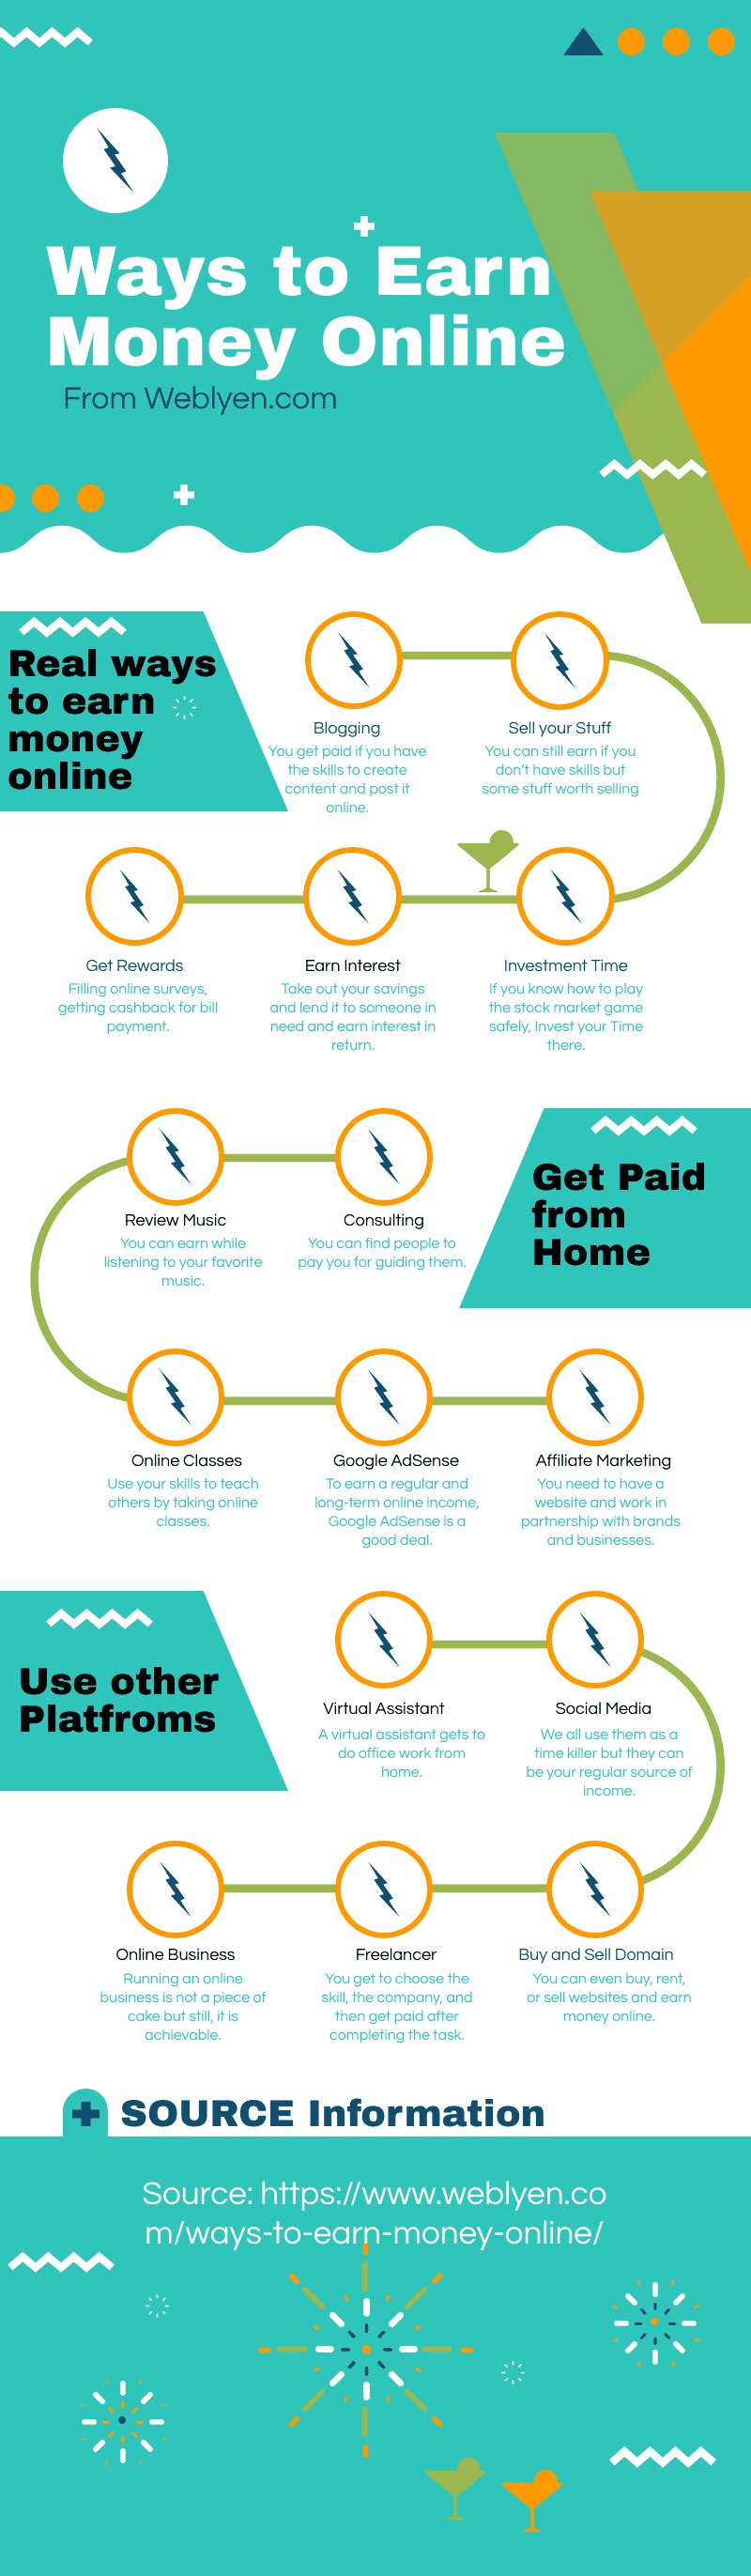 Infographic of Ways to Earn Money Online